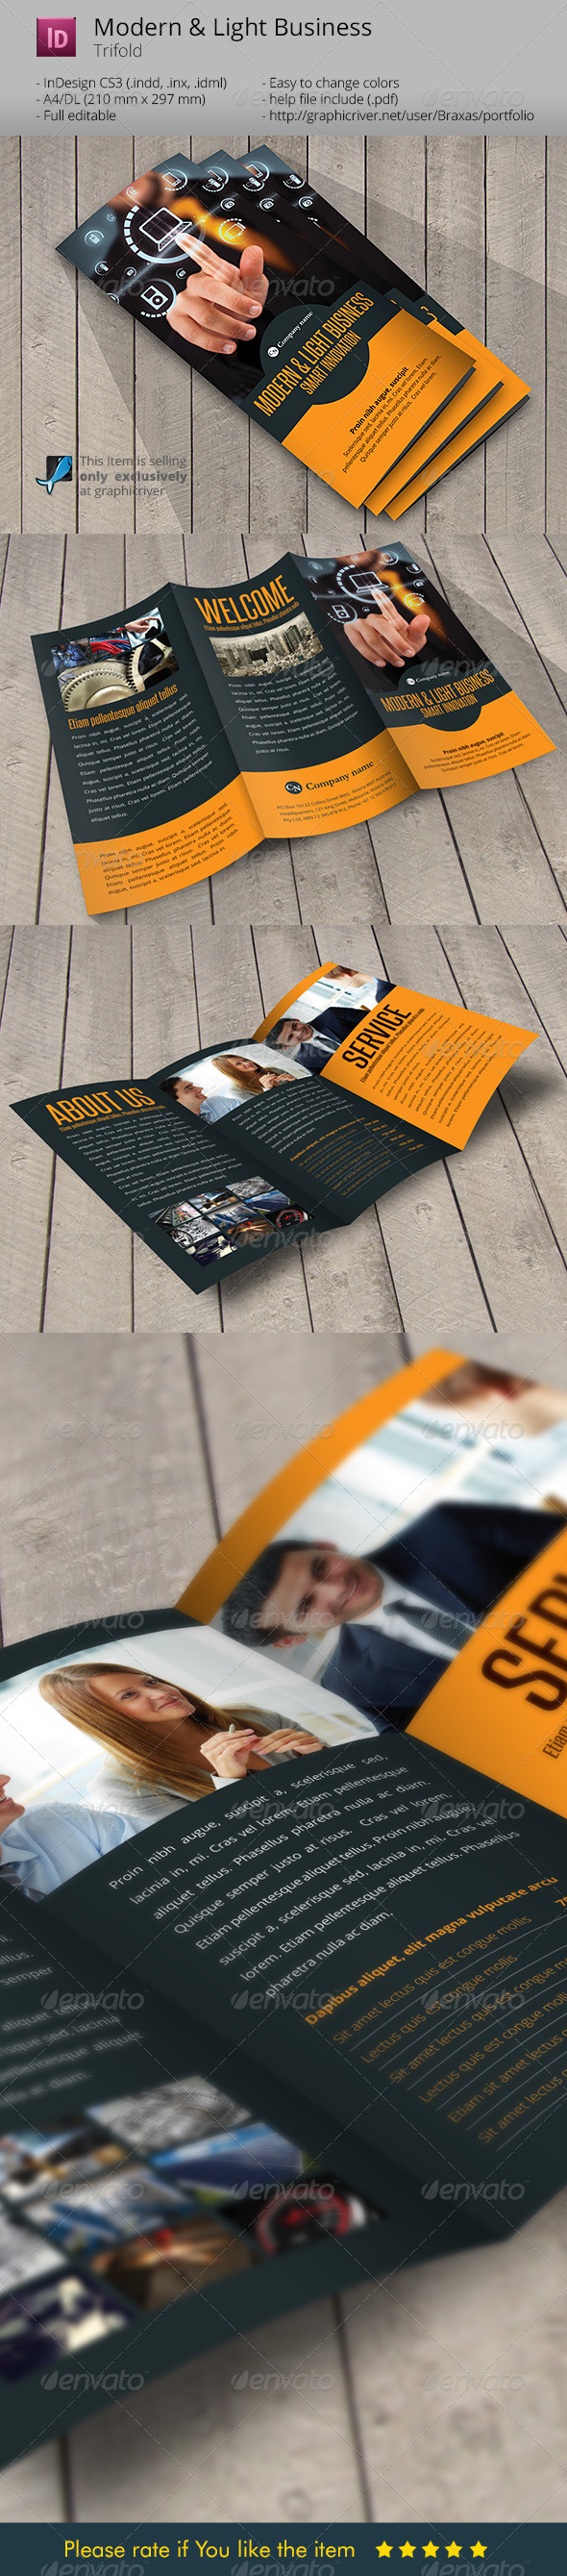 Modern and Light Business Indesign Template - Informational Brochures